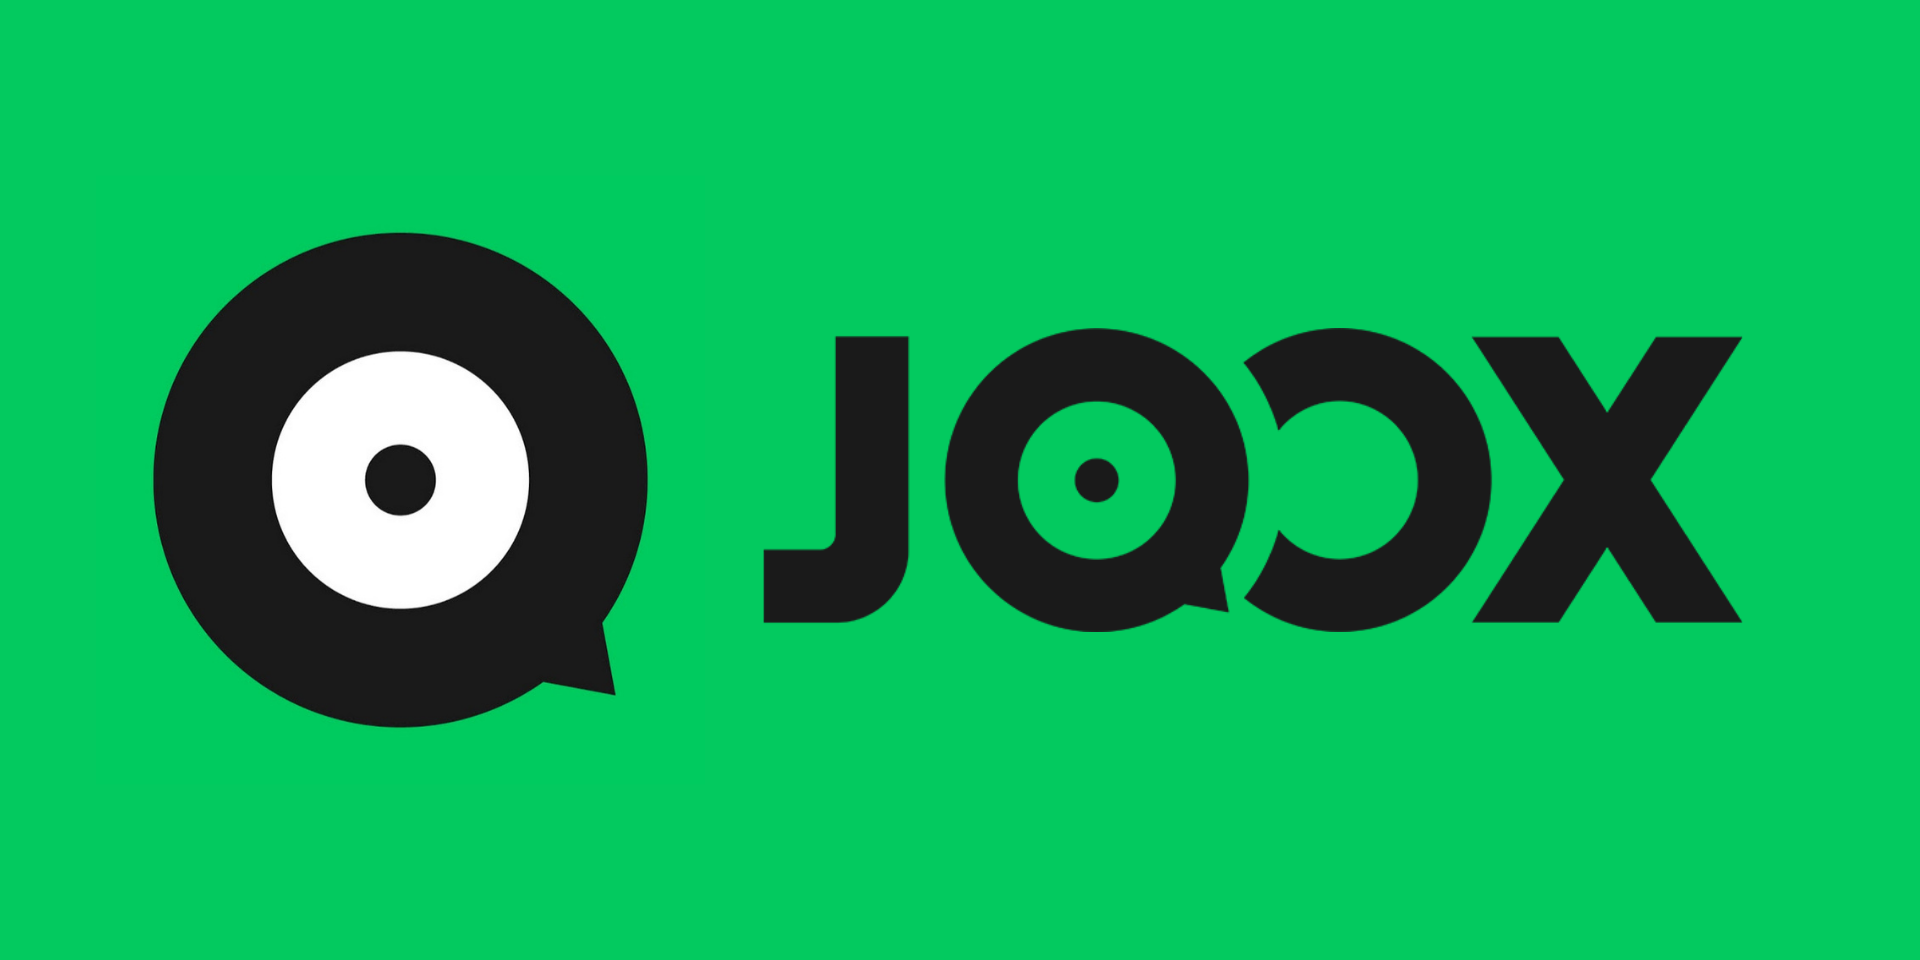 JOOX rolls out new virtual fan hangout features, Superstar Fans Pick and Artist Room